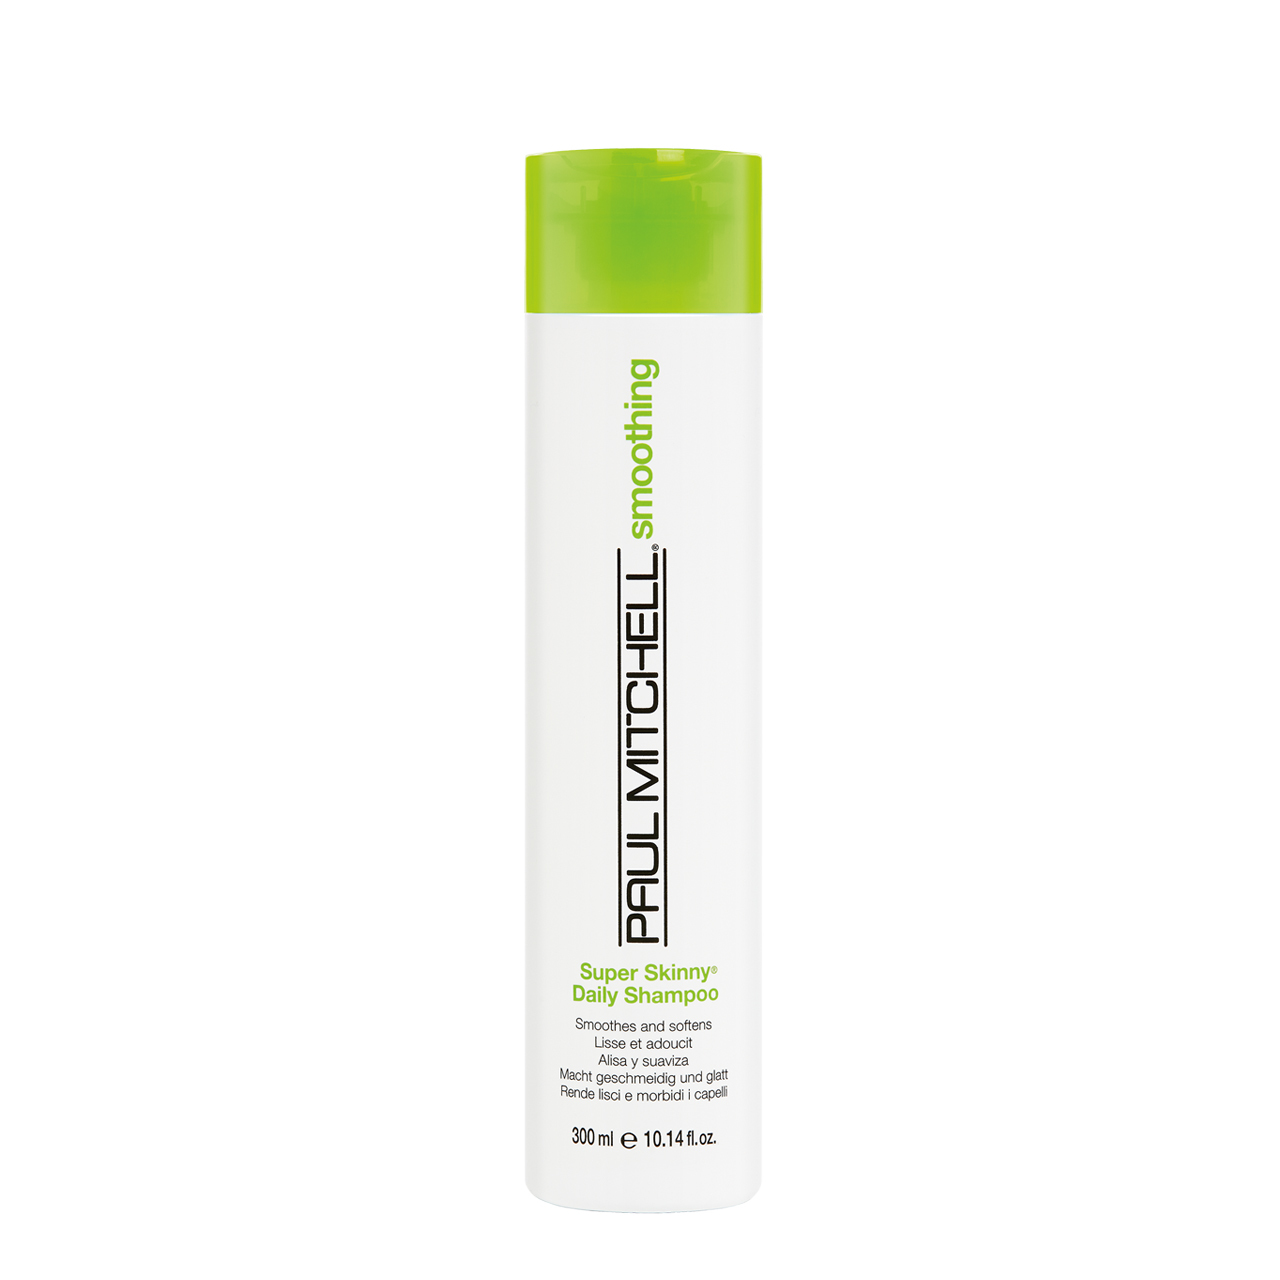 Paul Mitchell Smoothing Super Skinny Shampoo 10.14 oz - NY ...